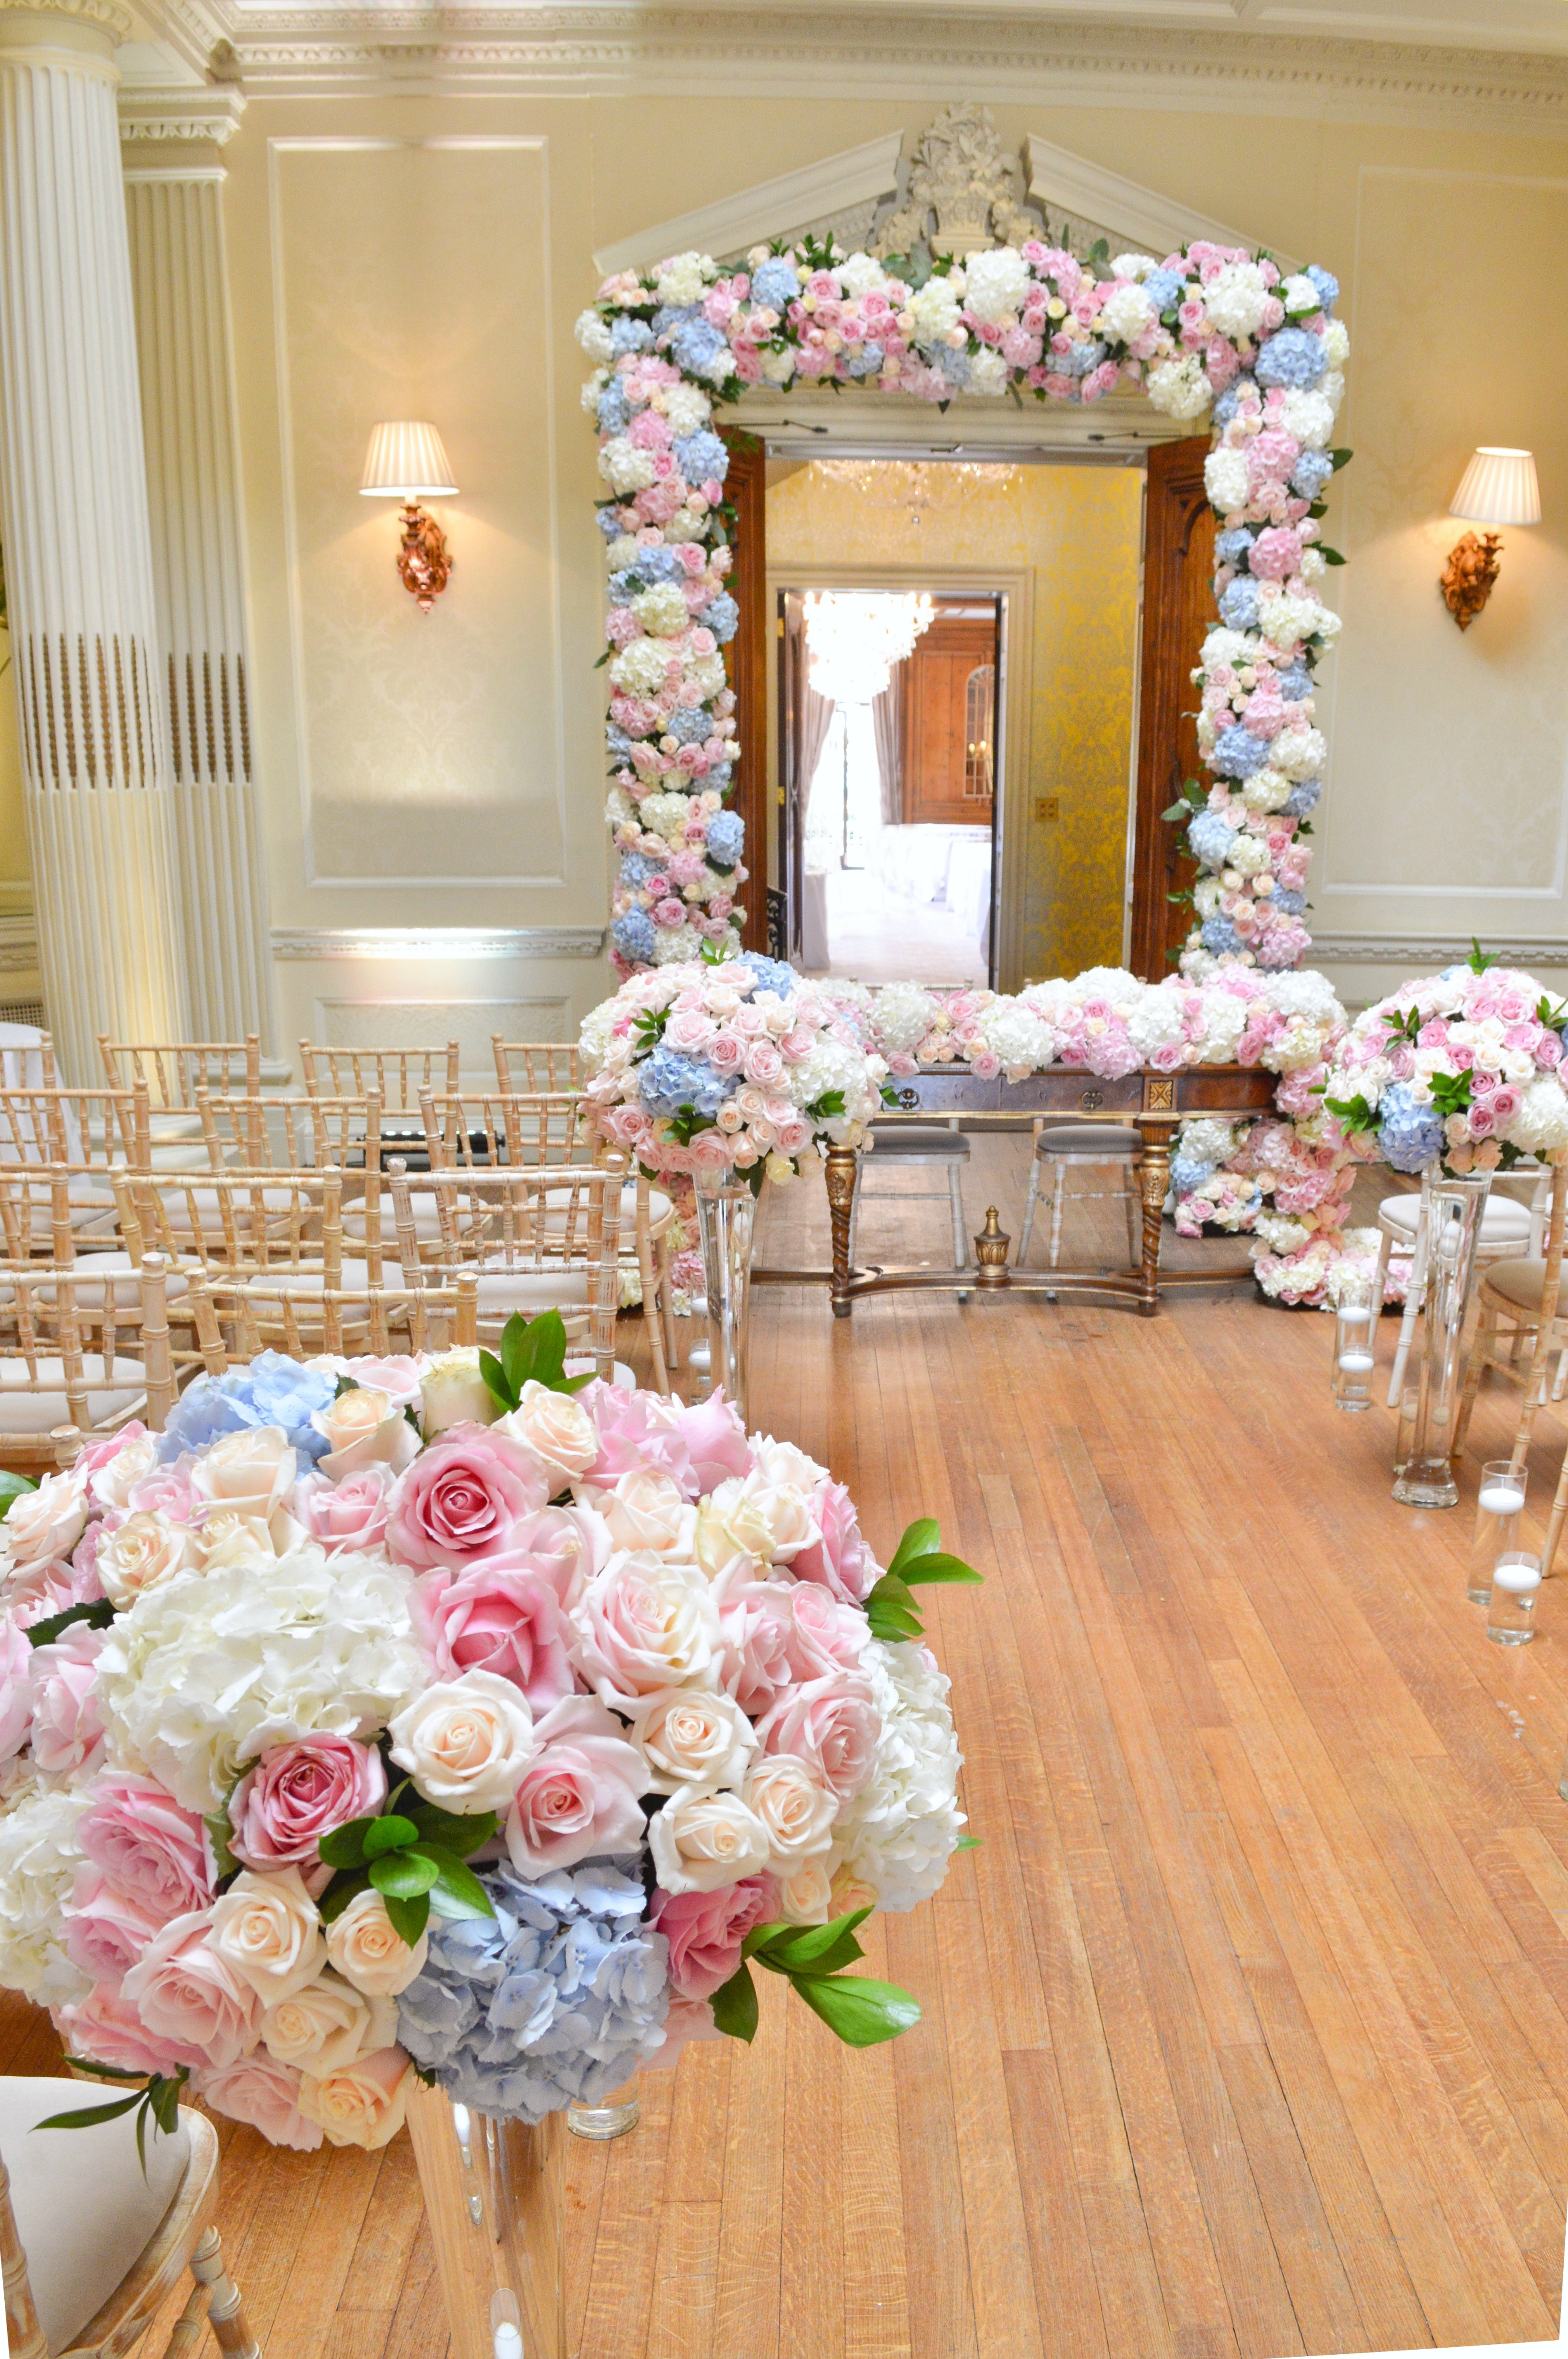 Dusty blue and pink wedding flowers arch registrar table head toptable floral garland wedding ceremony aisle tall centrepieces Cherie Kelly cakes London Hedsor House 4